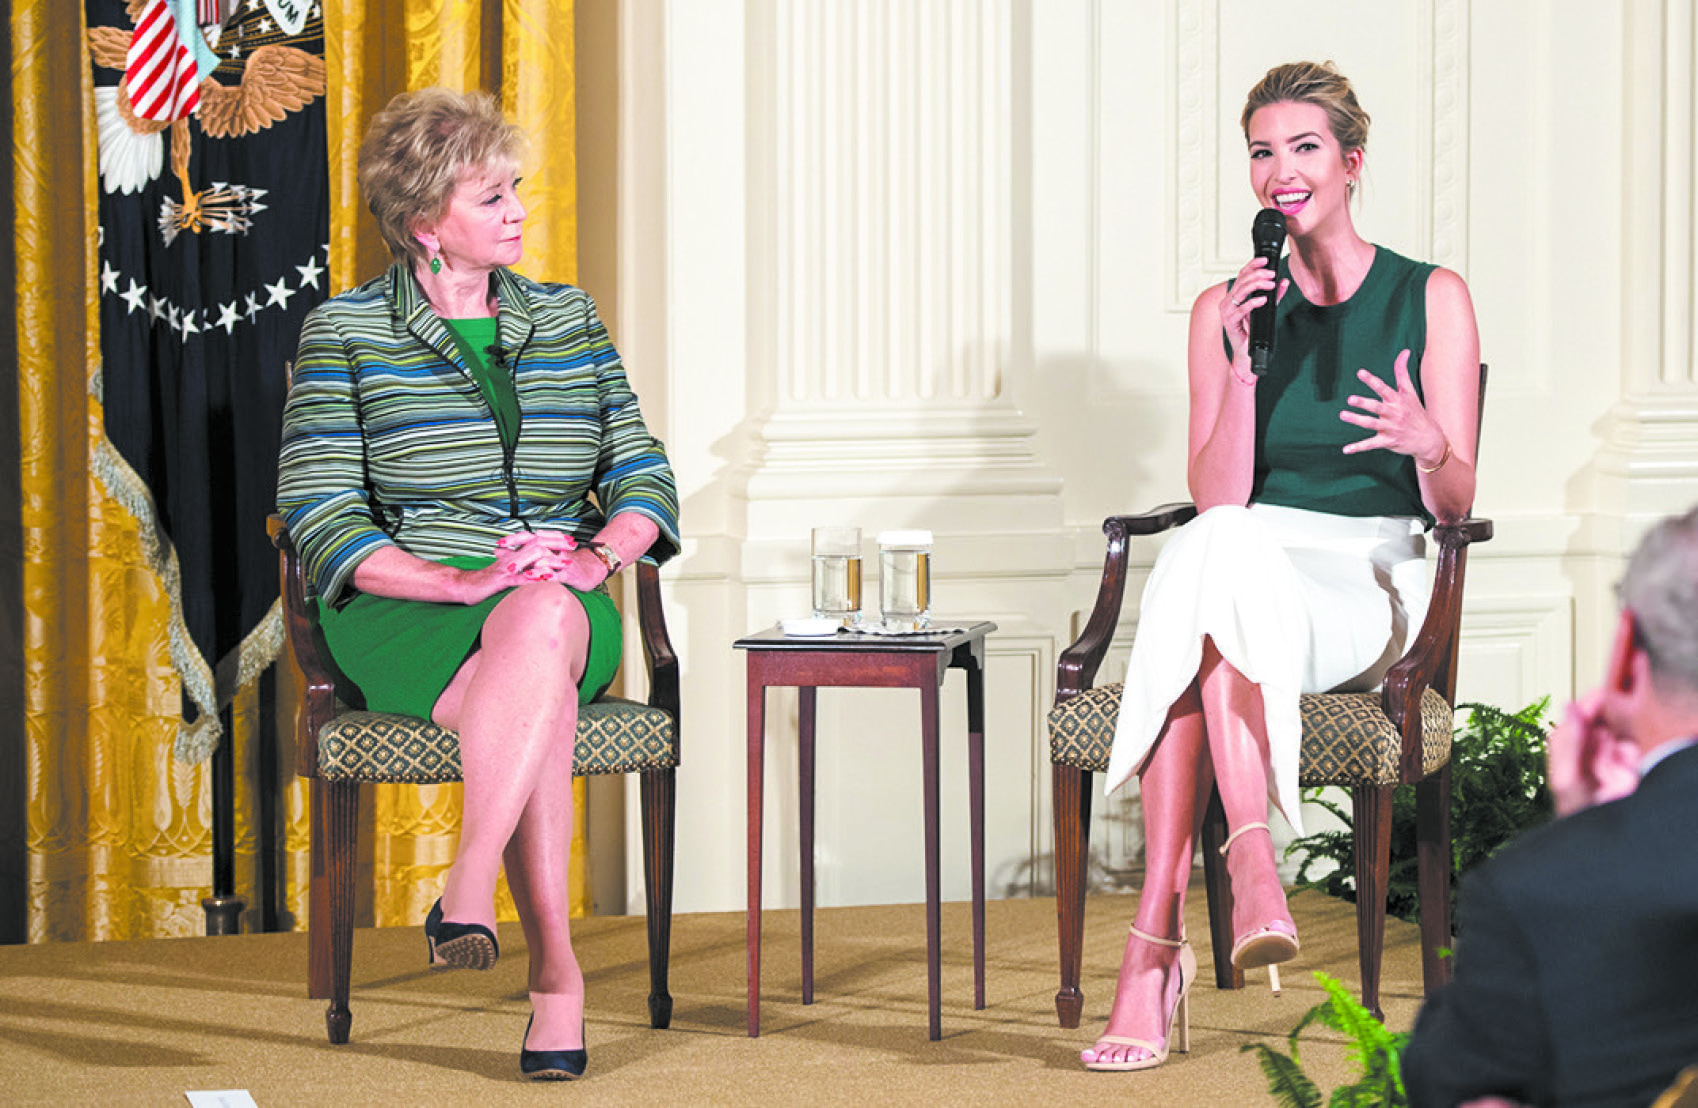 Ivanka Trump and Small Business Administrator Linda McMahon (L) participate in a small business event at the White House on Aug. 1.  (THE WHITE HOUSE)